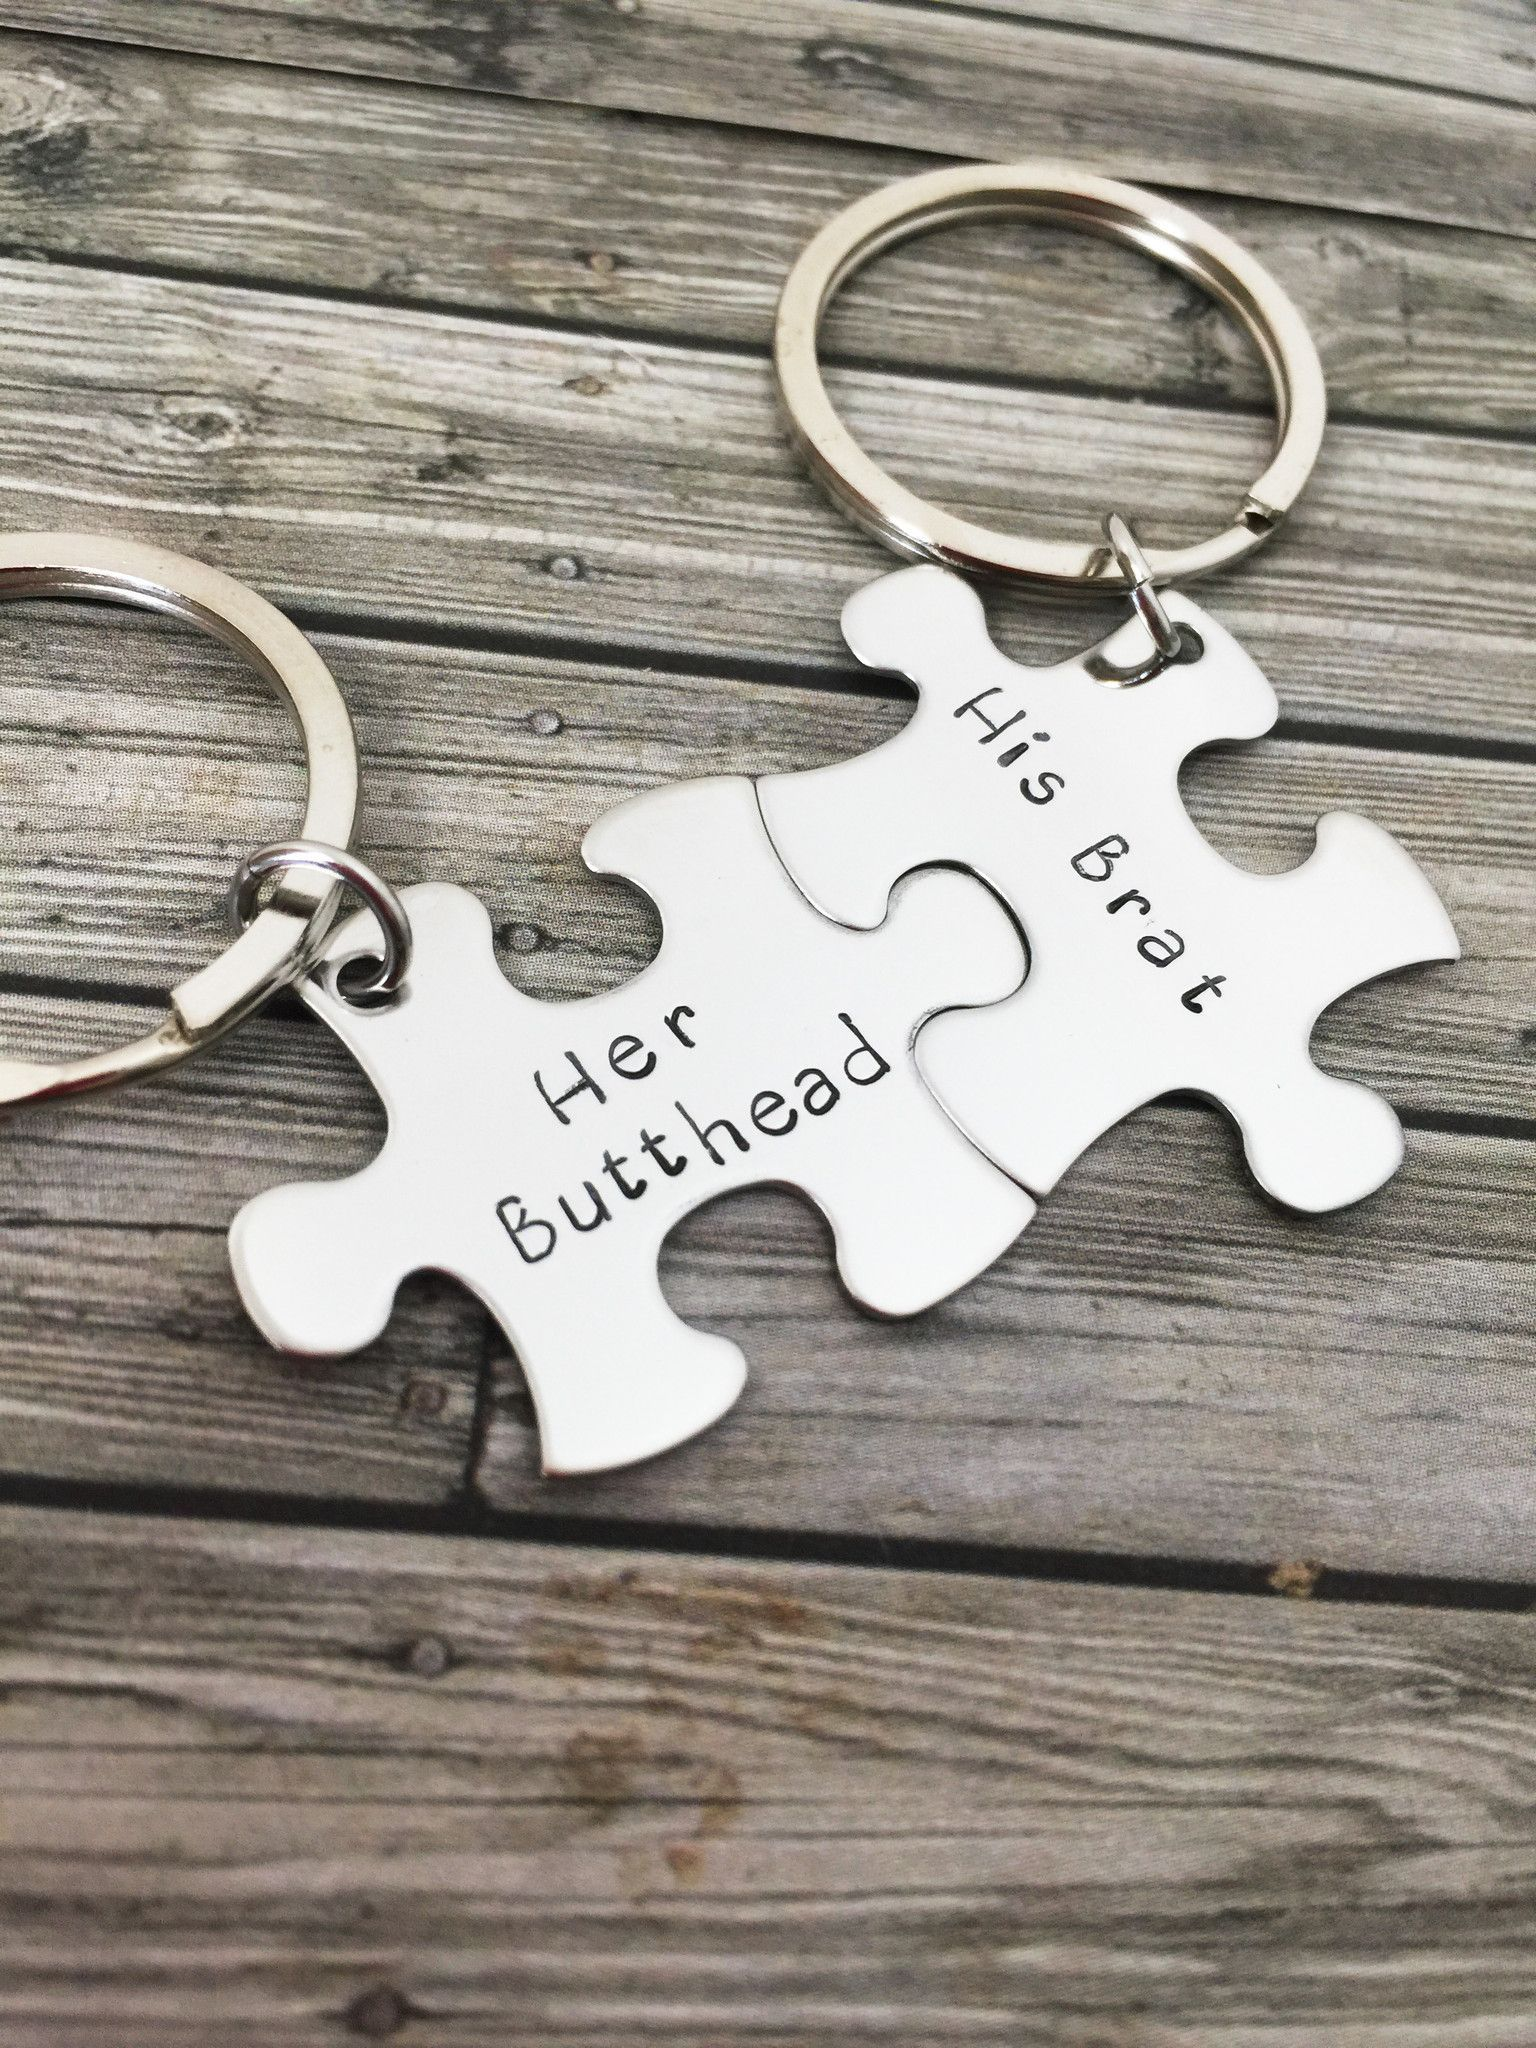 Her Head His Brat S Keychains Gift Funny Christmas